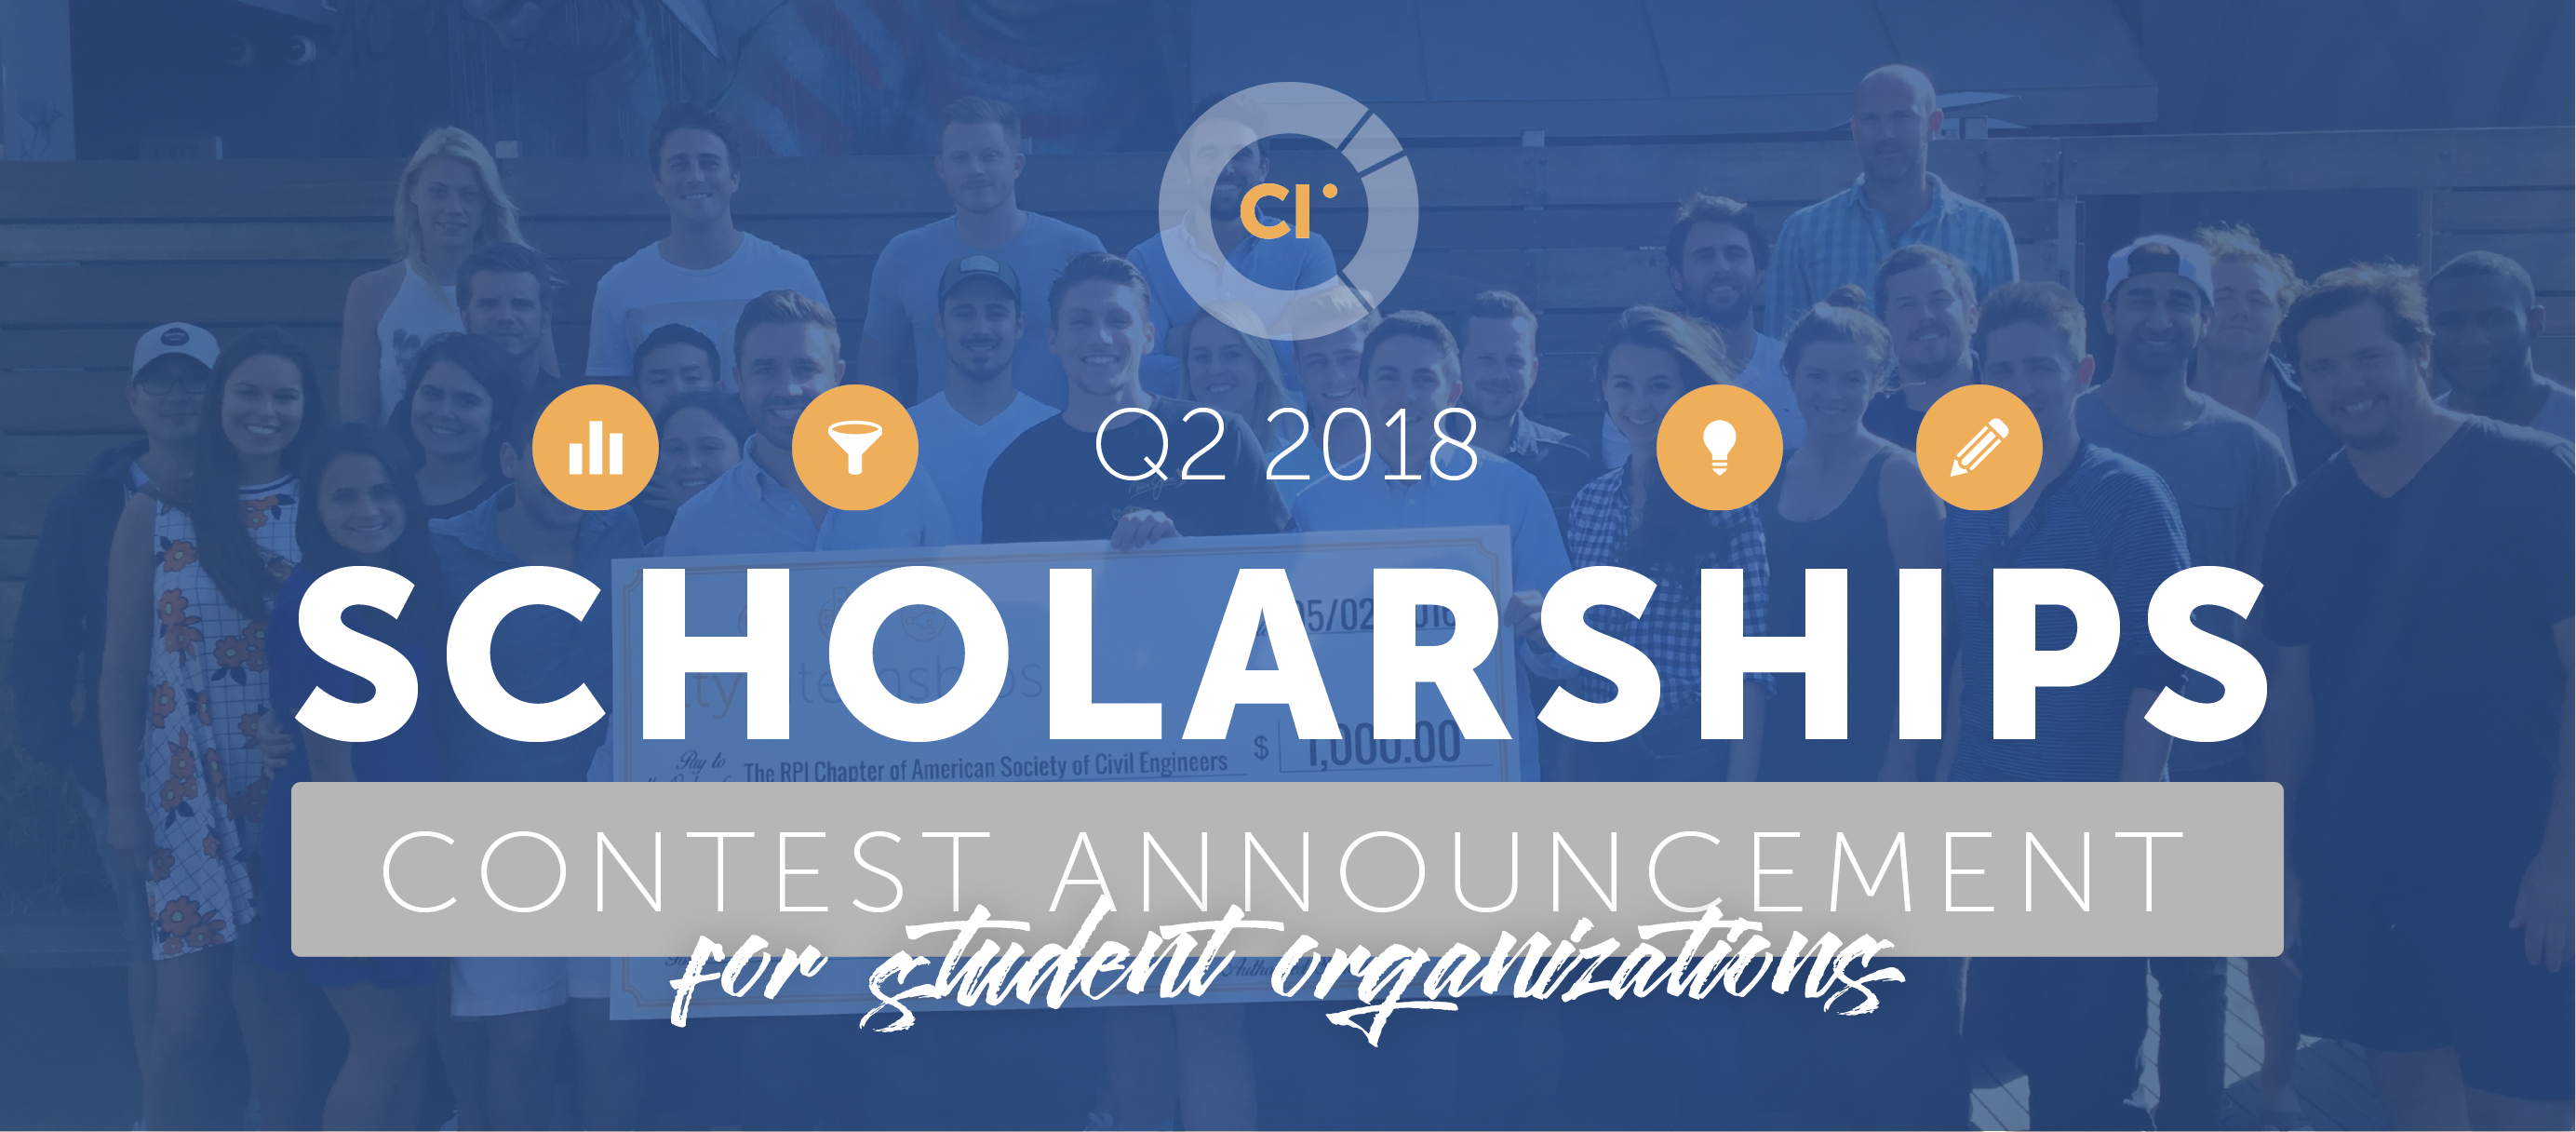 2018-Scholarship-Contest-Announcement-Student-Orgs-1